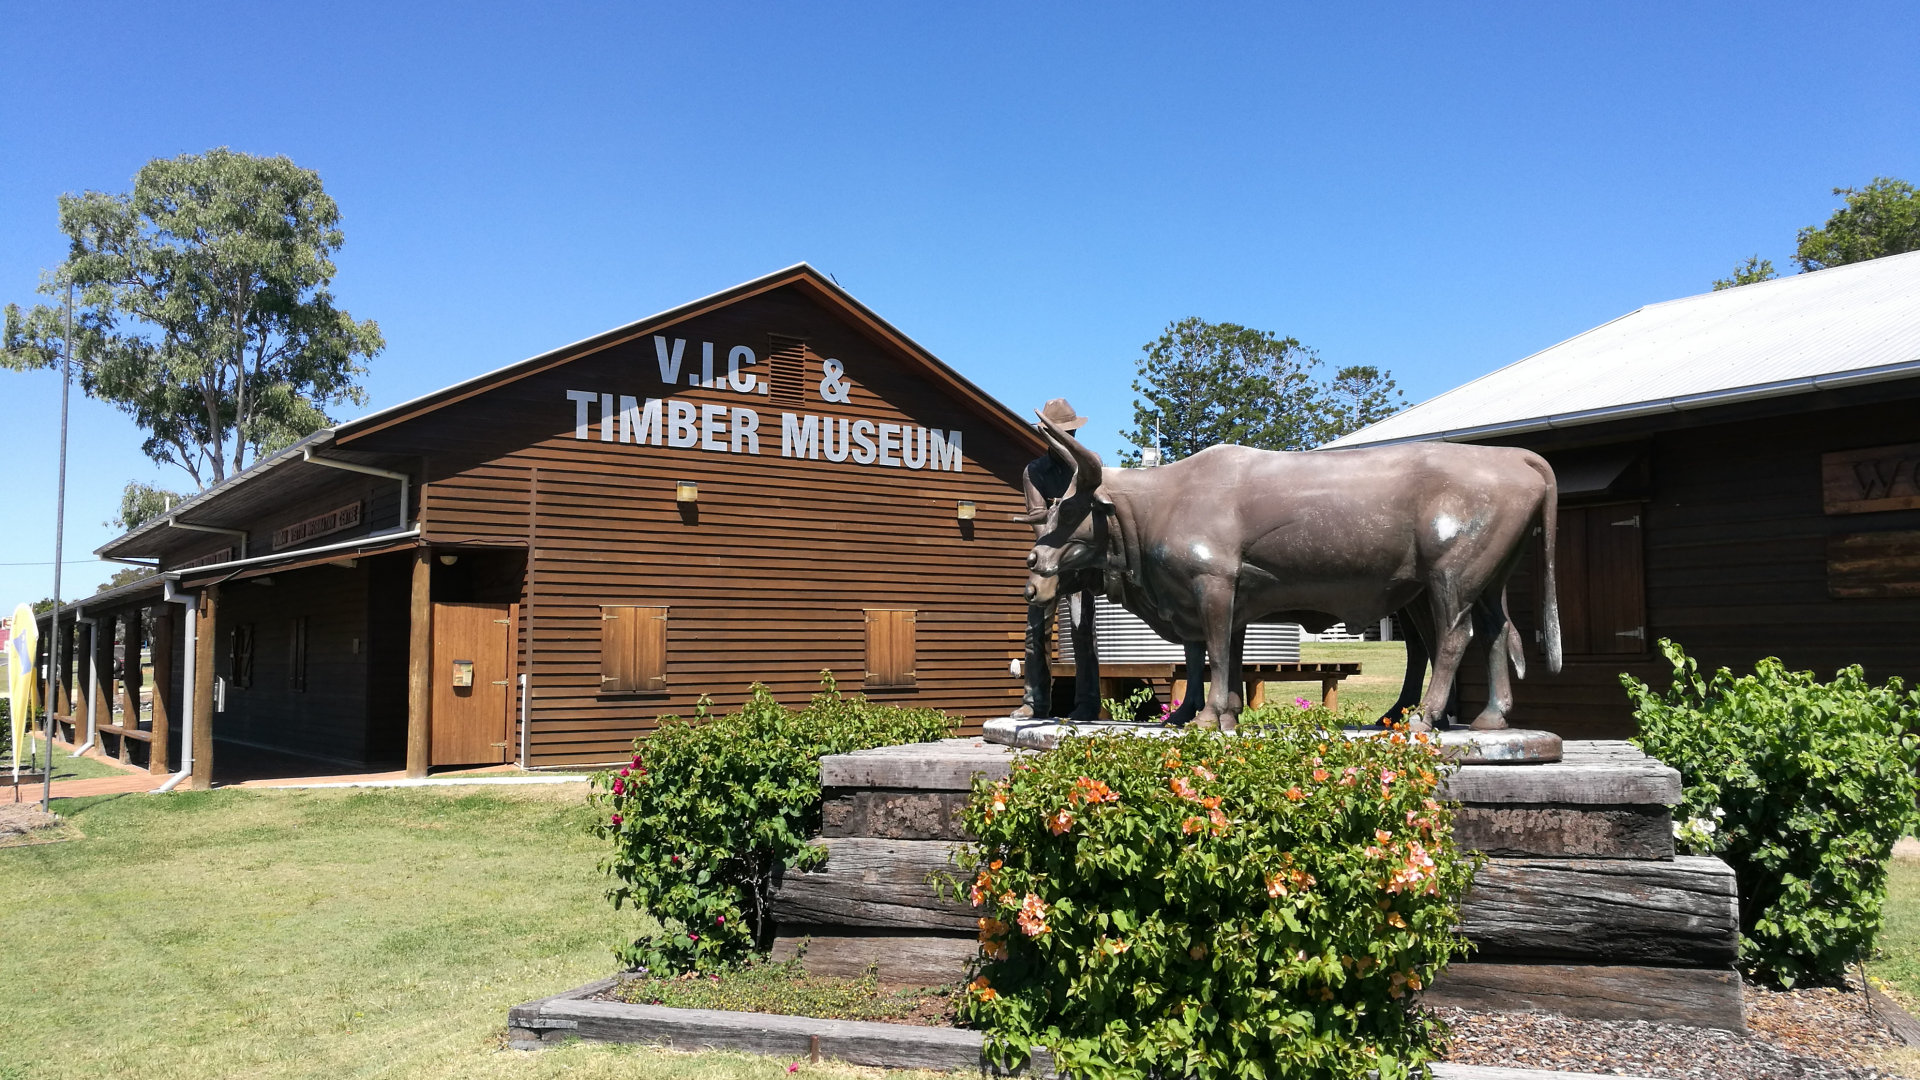 The Timber Museum in Wondai, part of the Wondai Visitor Information Centre, with a bullock statue. Inside is a timber display depicting early life in the timber industry